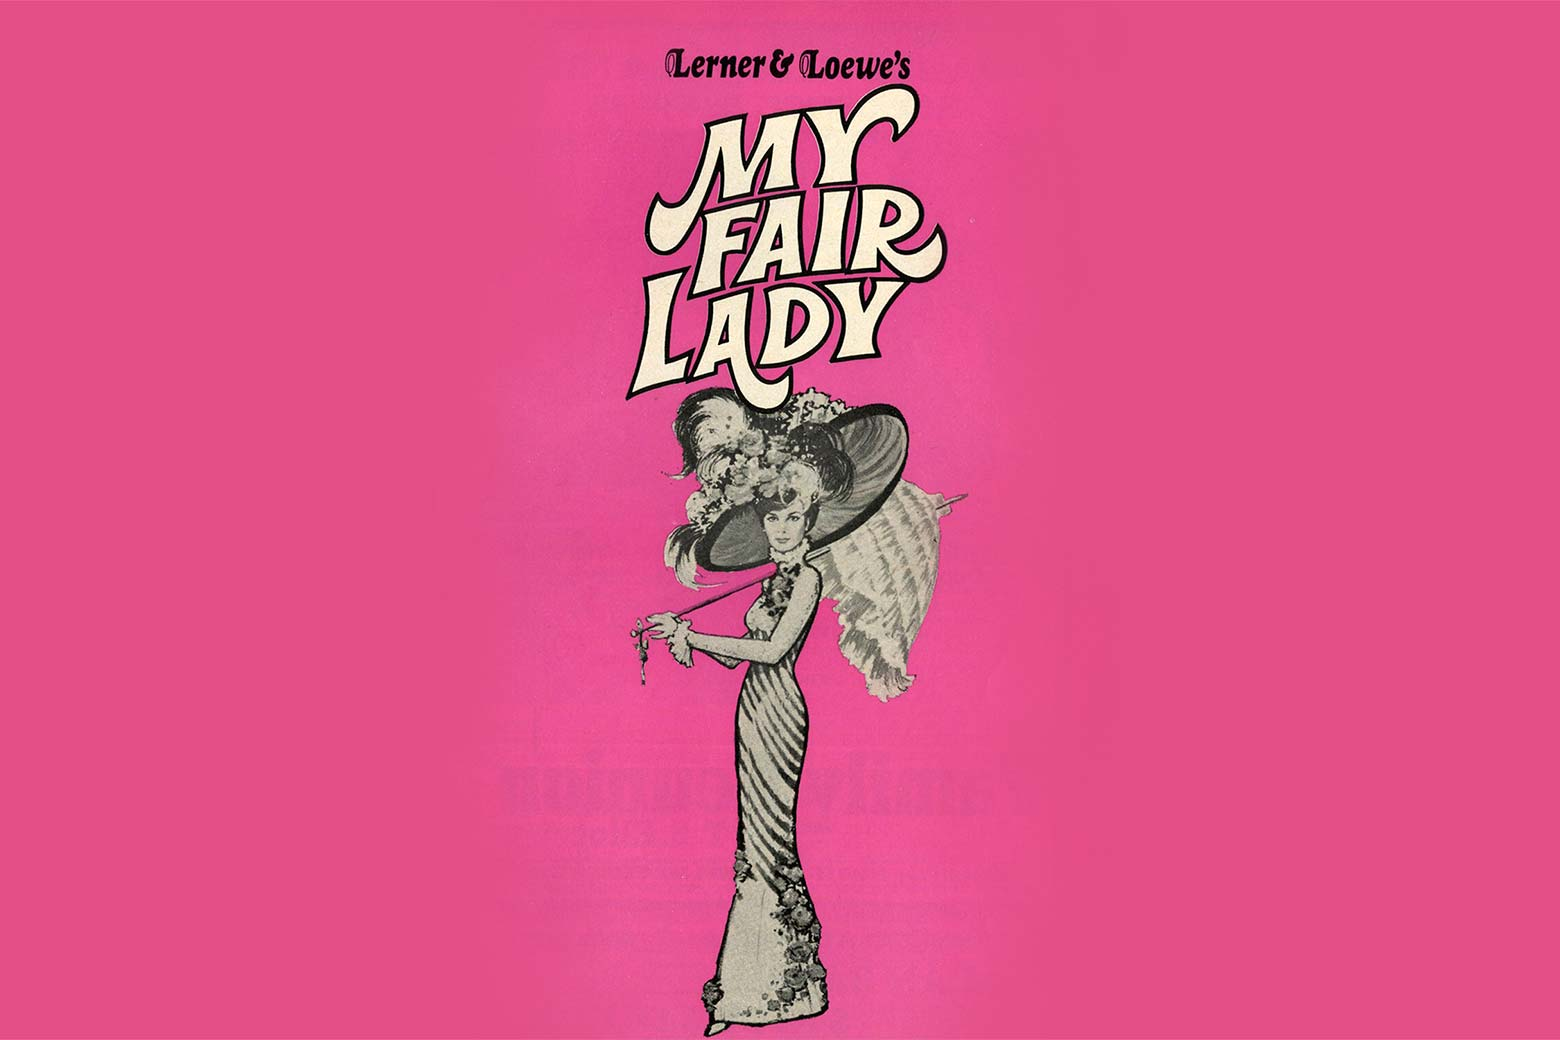 A 1970s poster for the musical My Fair Lady